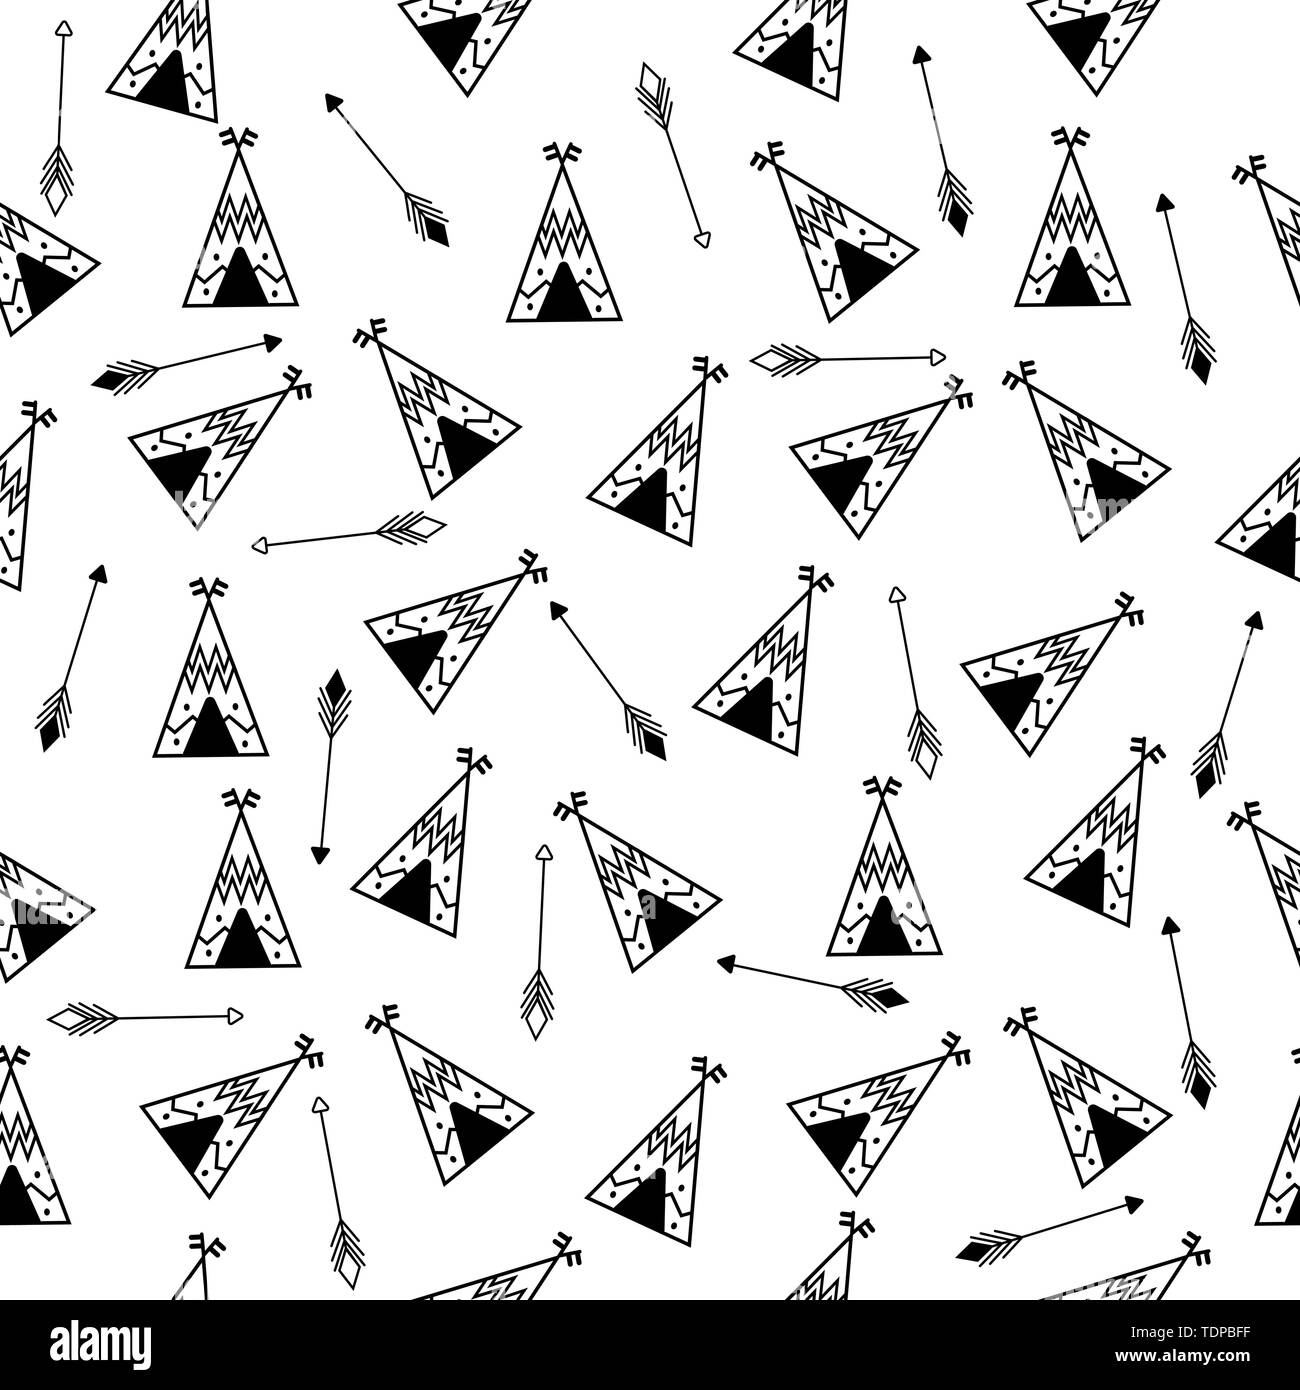 Teepee And Arrows Seamless Pattern Indian Repetitive Design